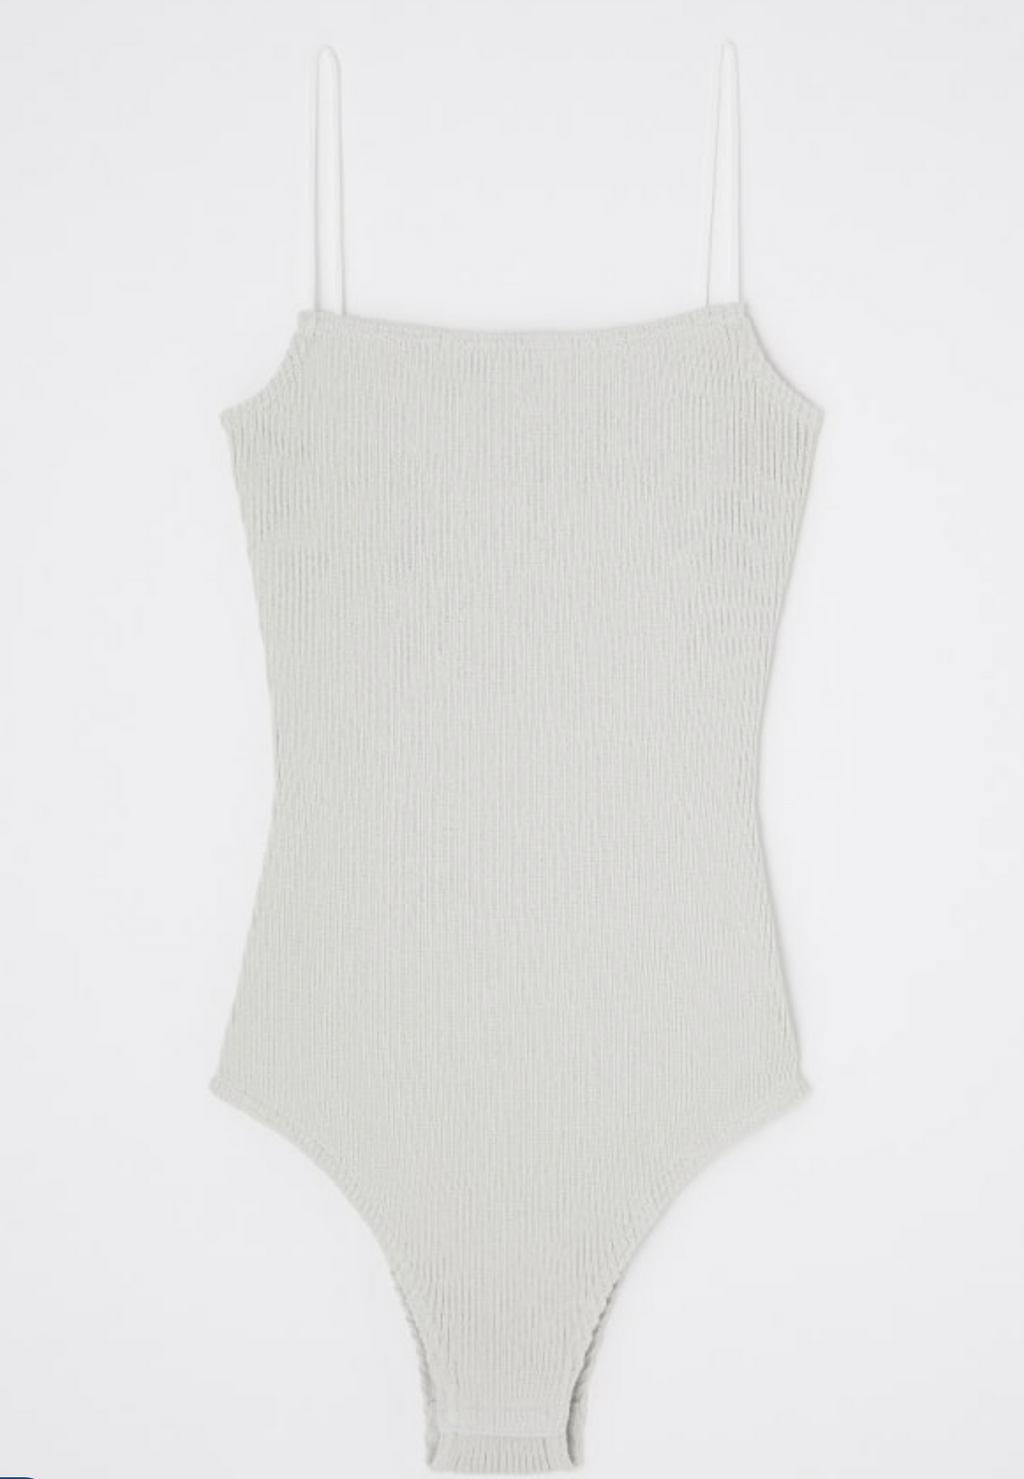 Moussy MV rib knit cami bodysuit